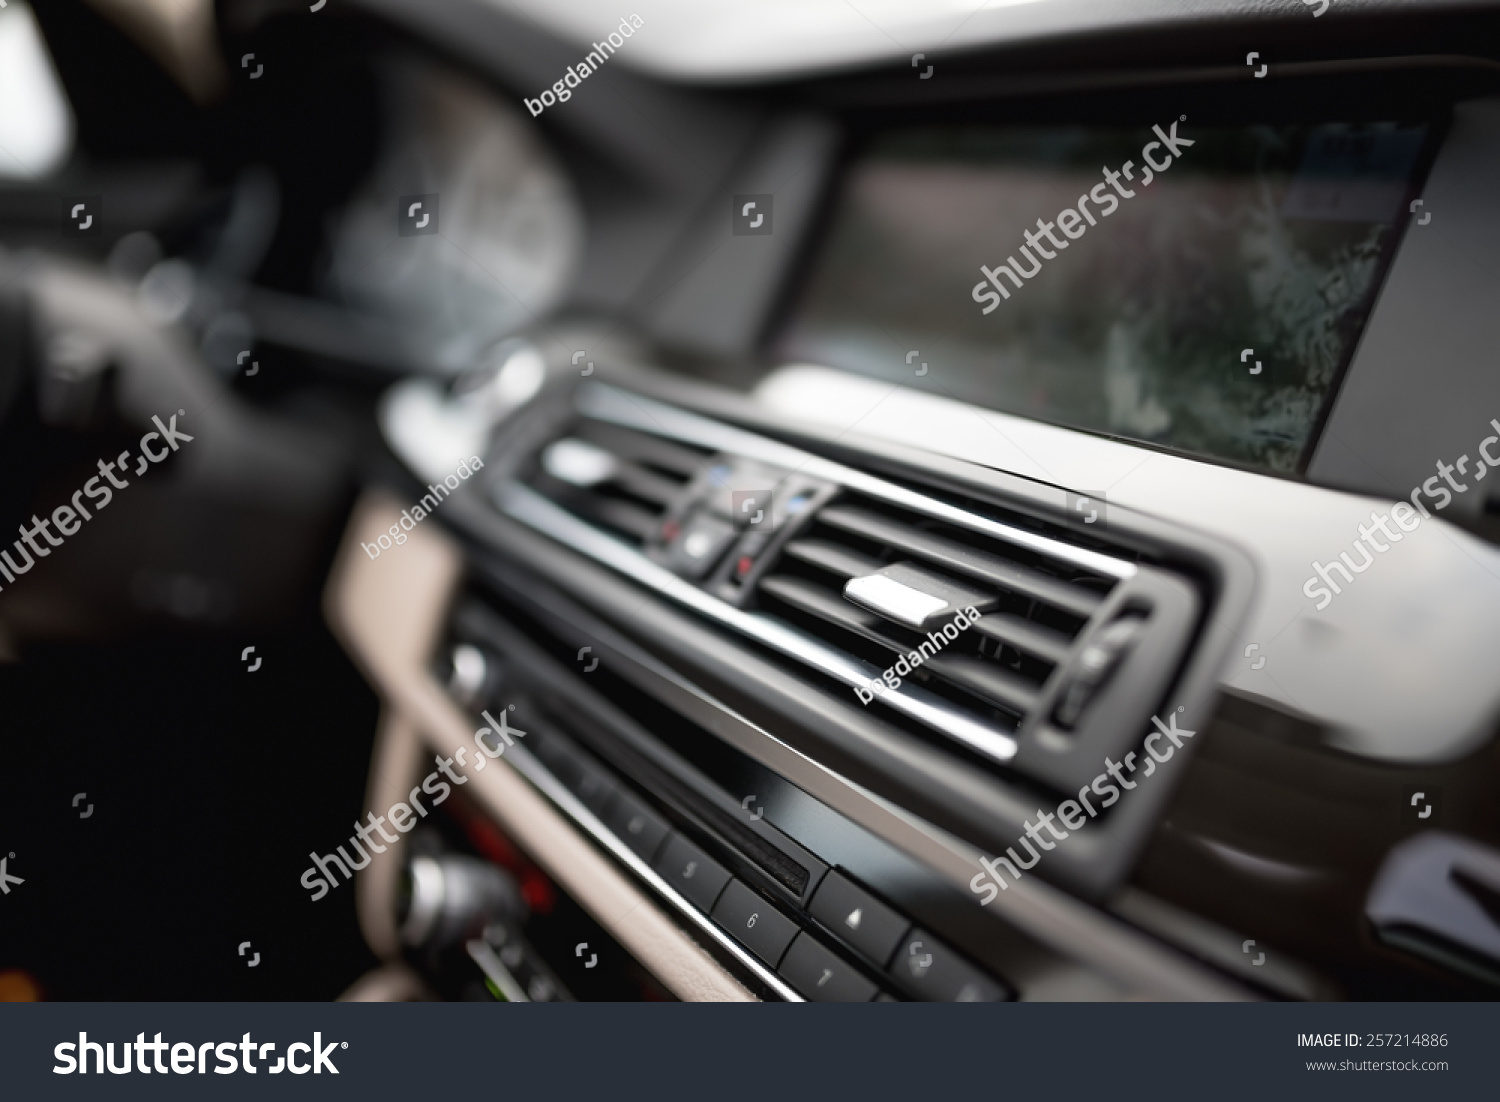 modern car interior with close up of ventilation system holes and air conditioning concept. Black Bedroom Furniture Sets. Home Design Ideas